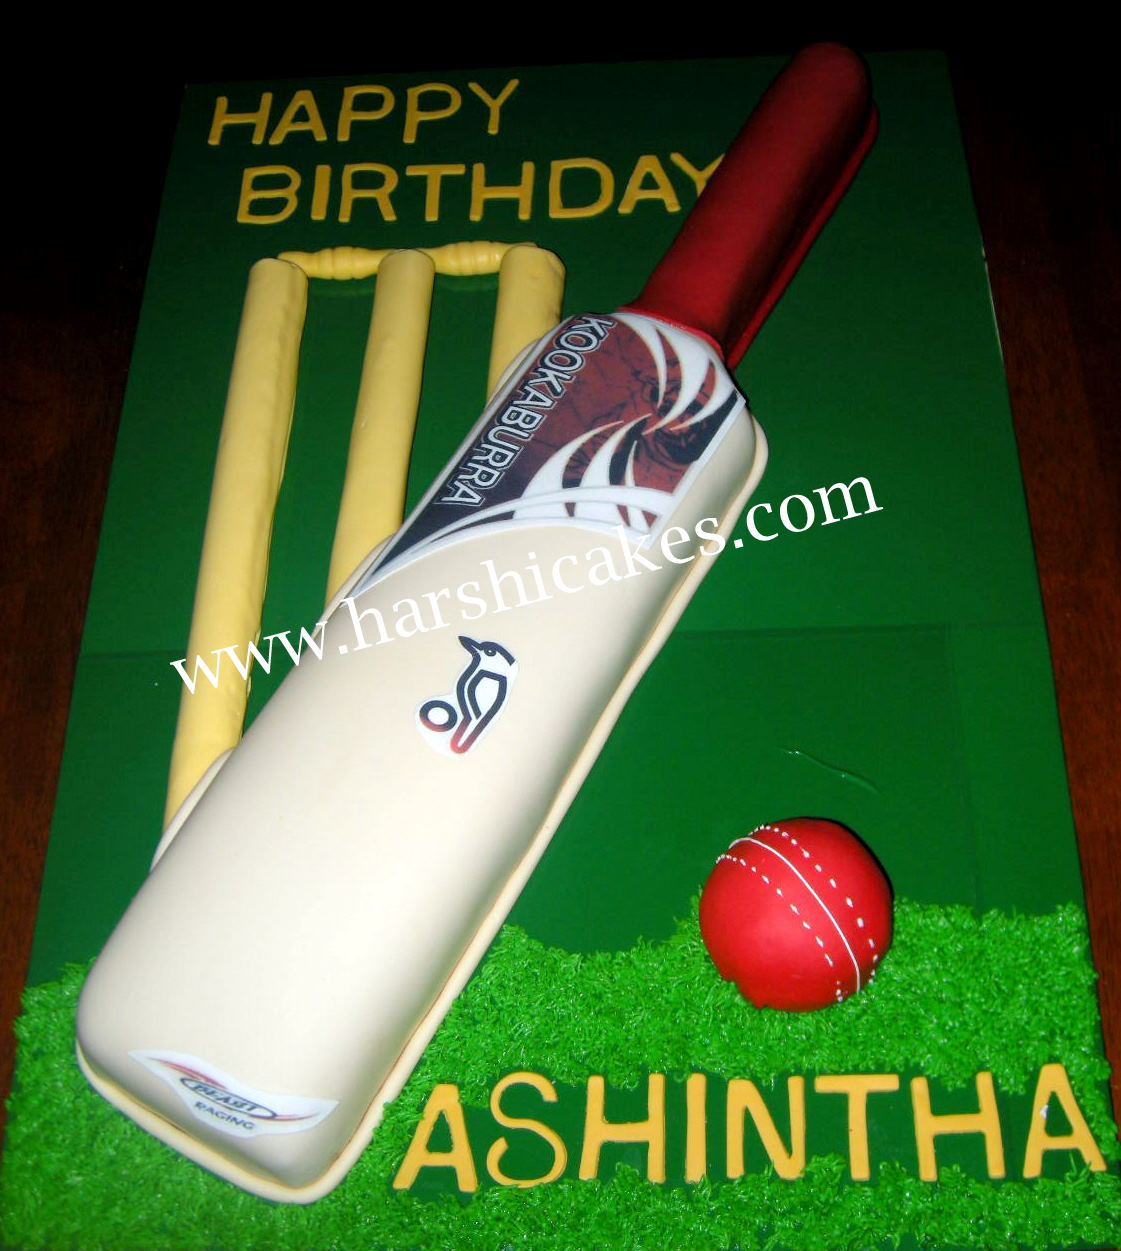 Harshi S Cakes Amp Bakes Kookaburra Cricket Bat For Ashintha